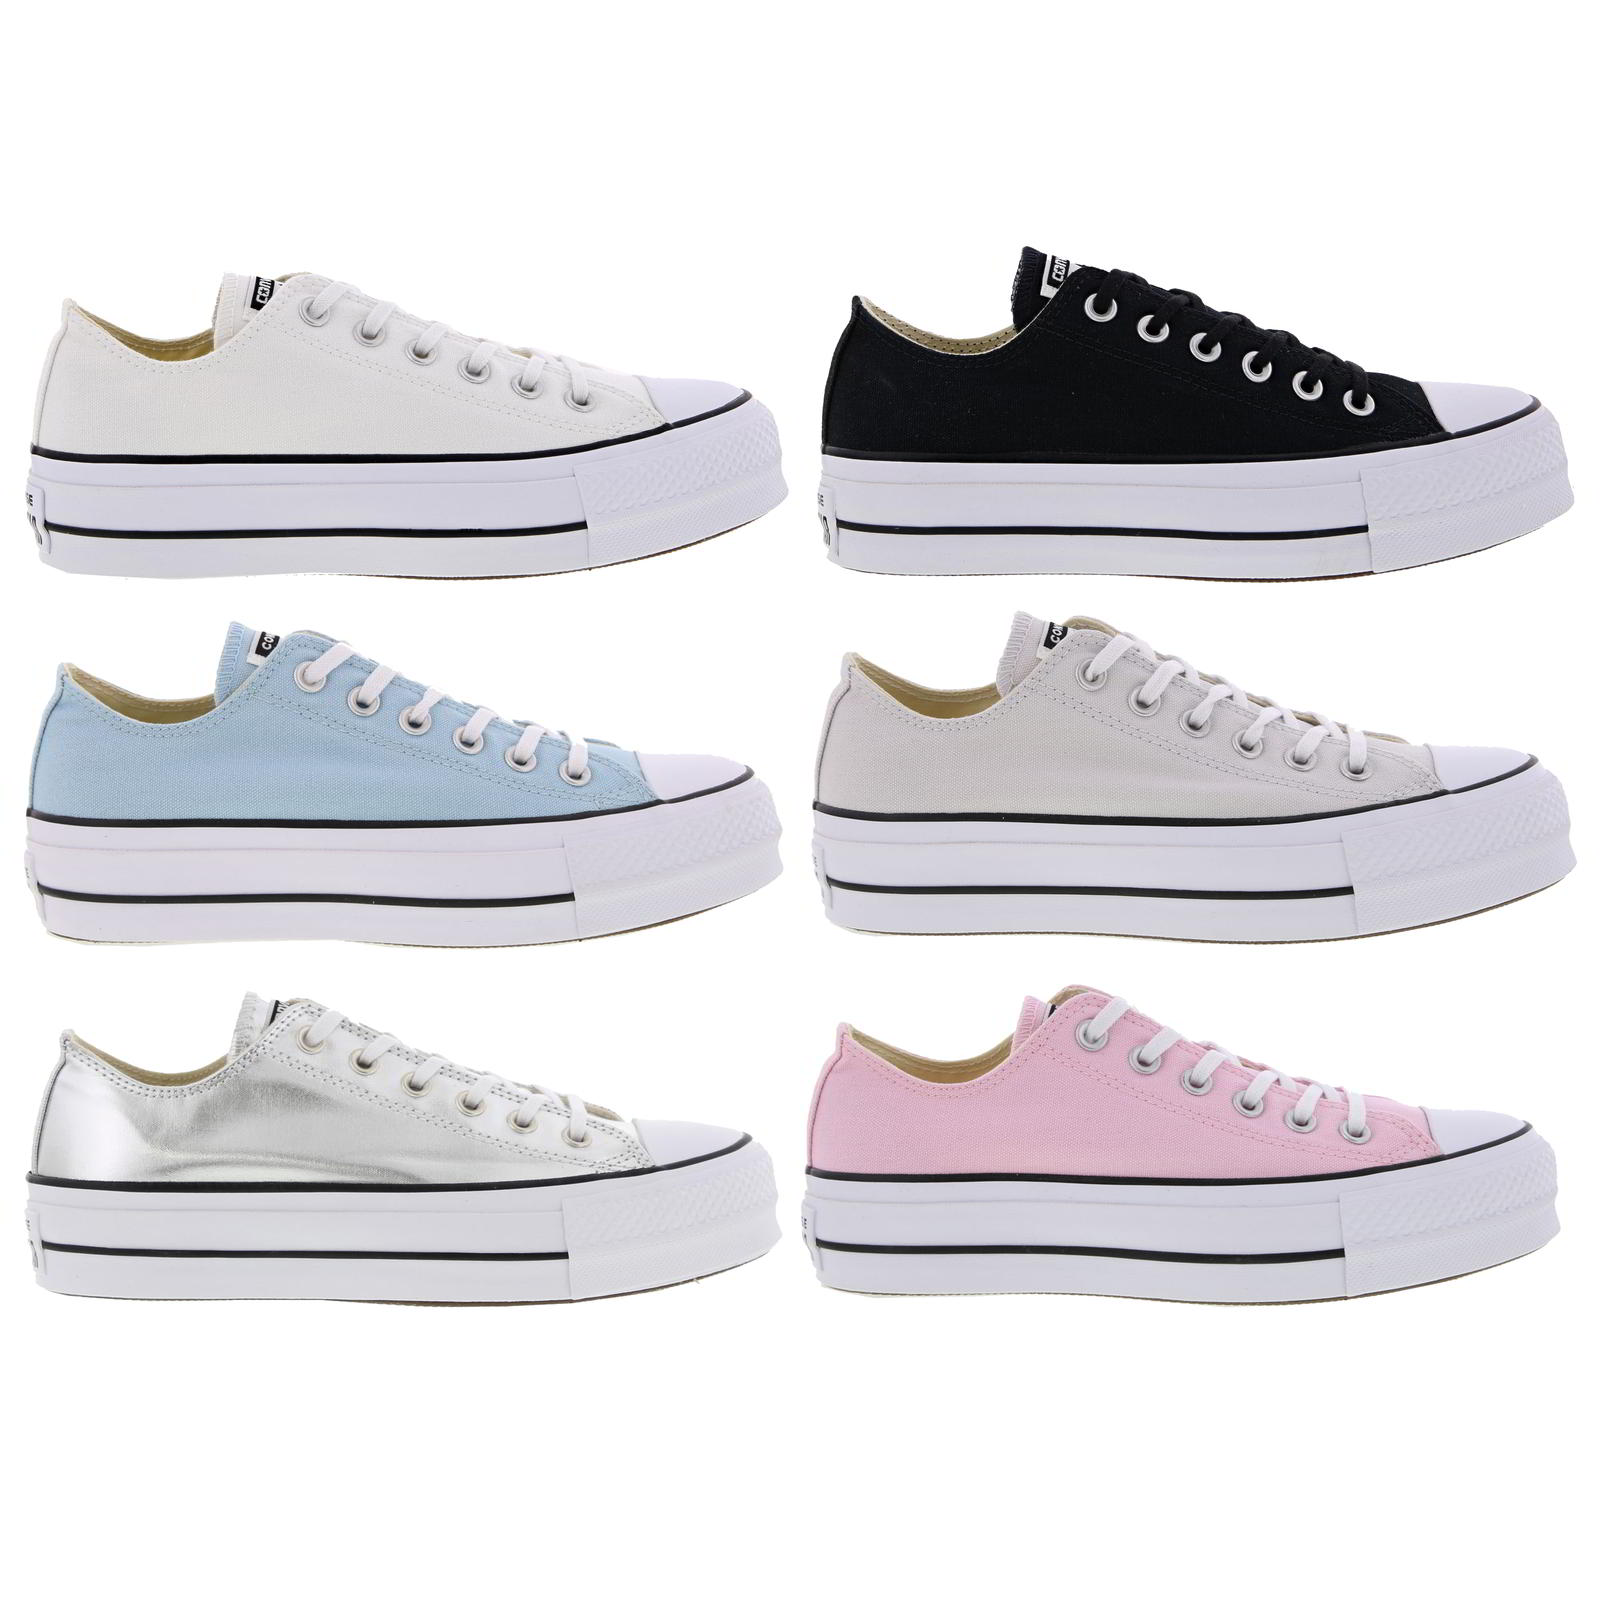 b387f2ea1416 Details about Converse All Star Low Womens Platform Lace Up Shoes White  Black Blue Silver Pink